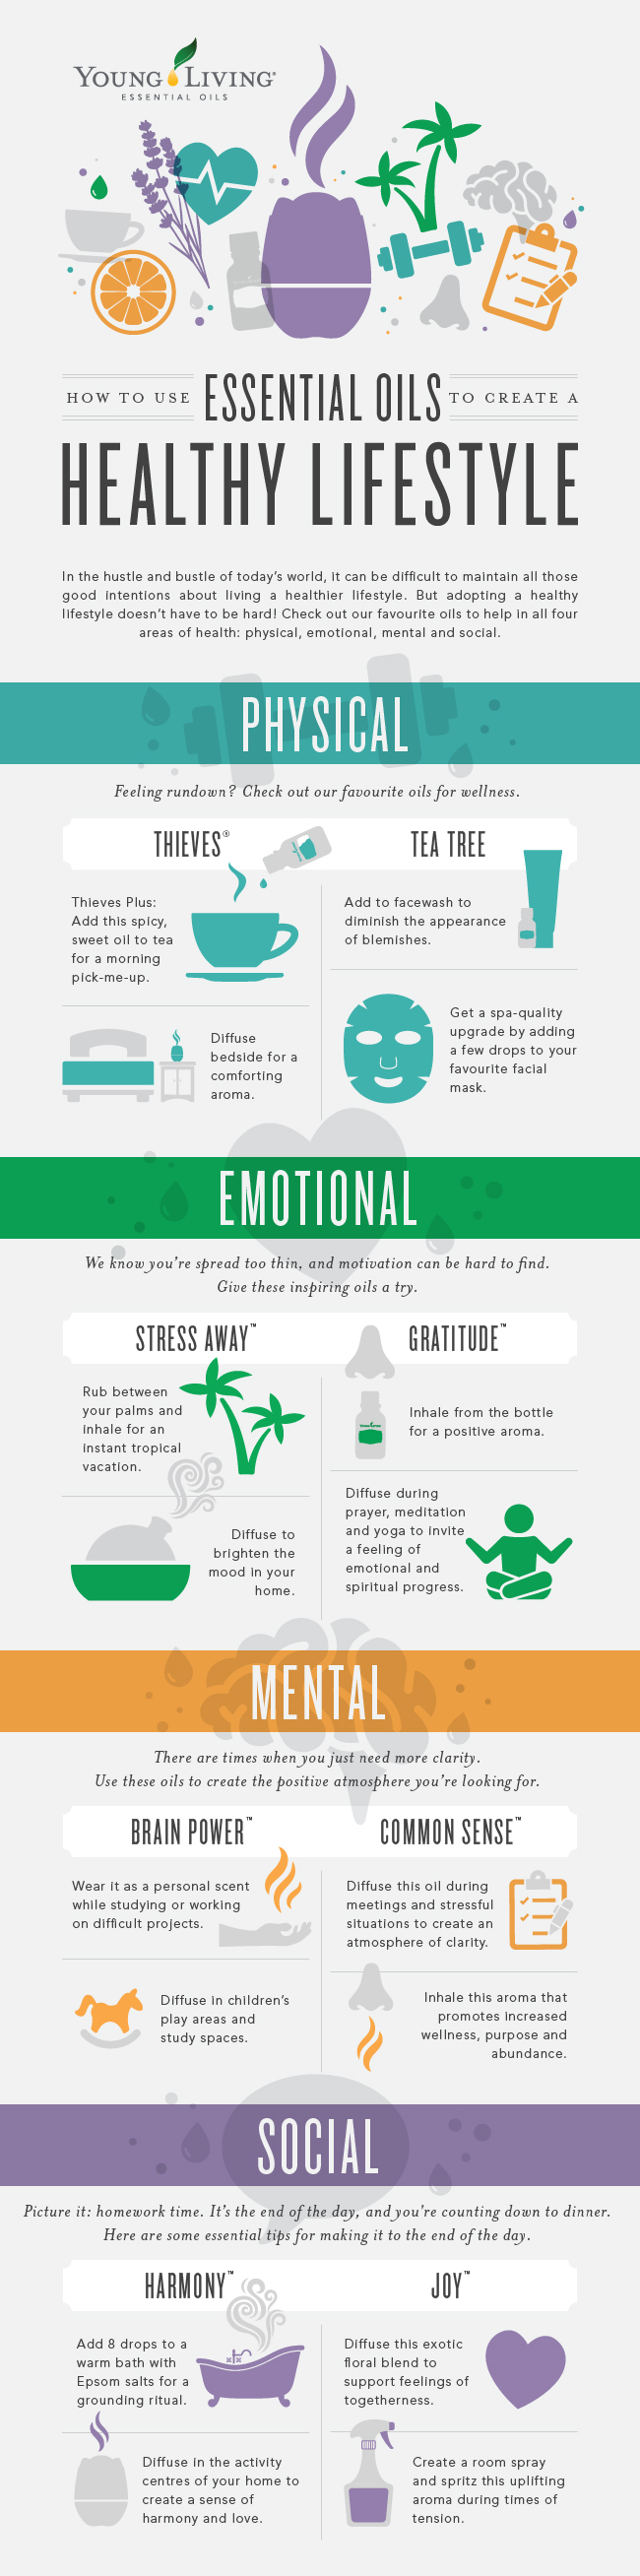 Essential oils for mental, physical, emotional, and social health infographic